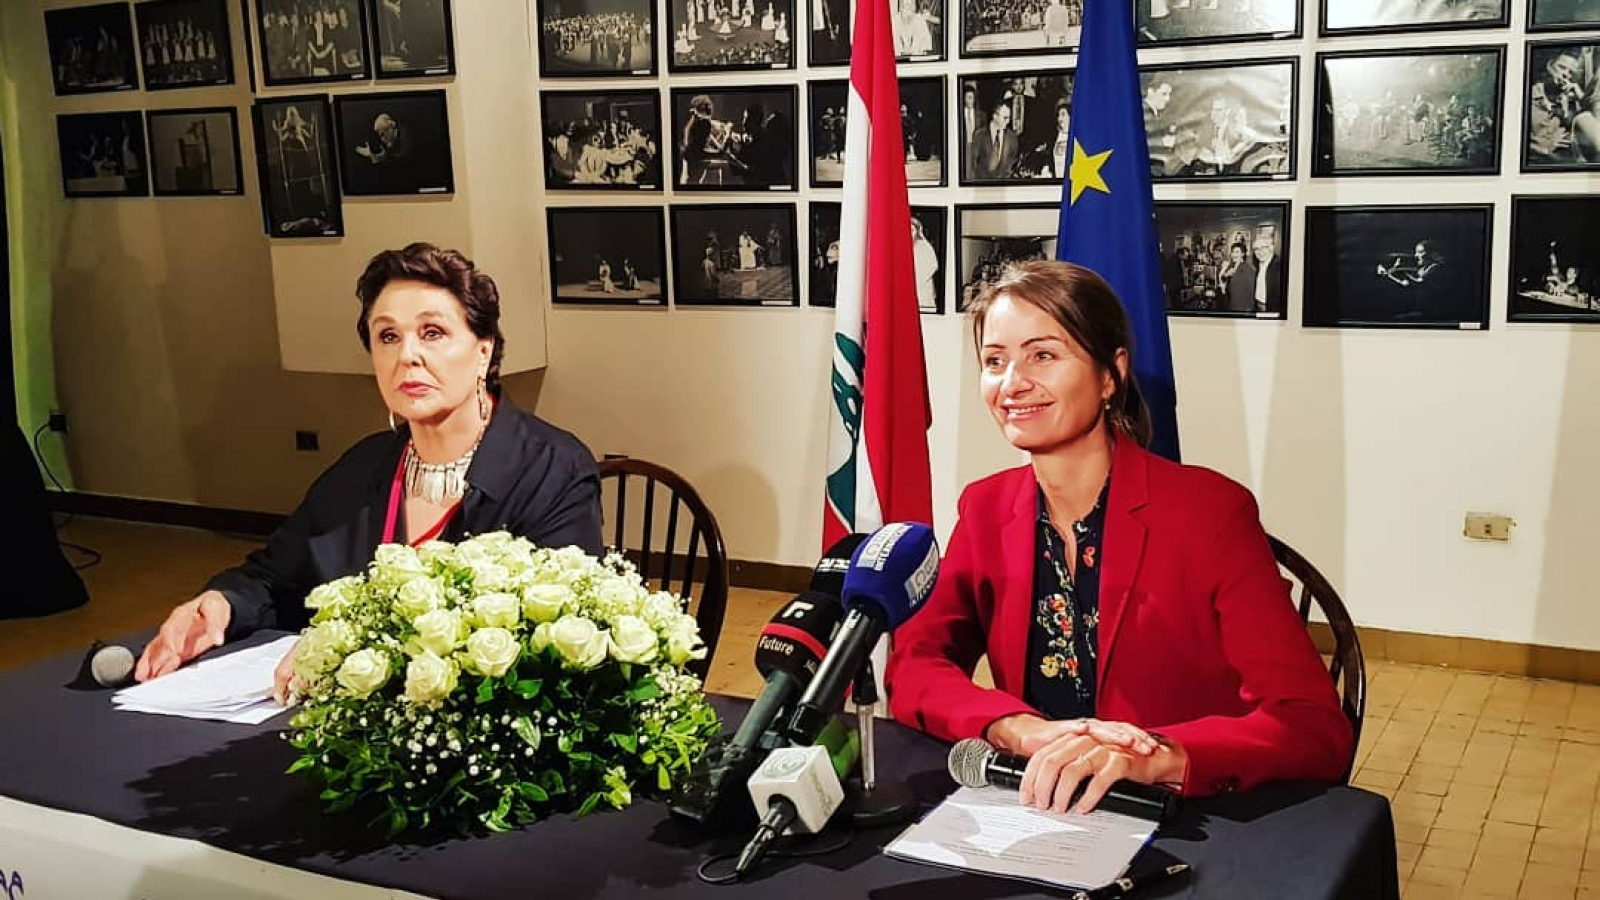 EU launches first edition of European Theatre Festival in Lebanon